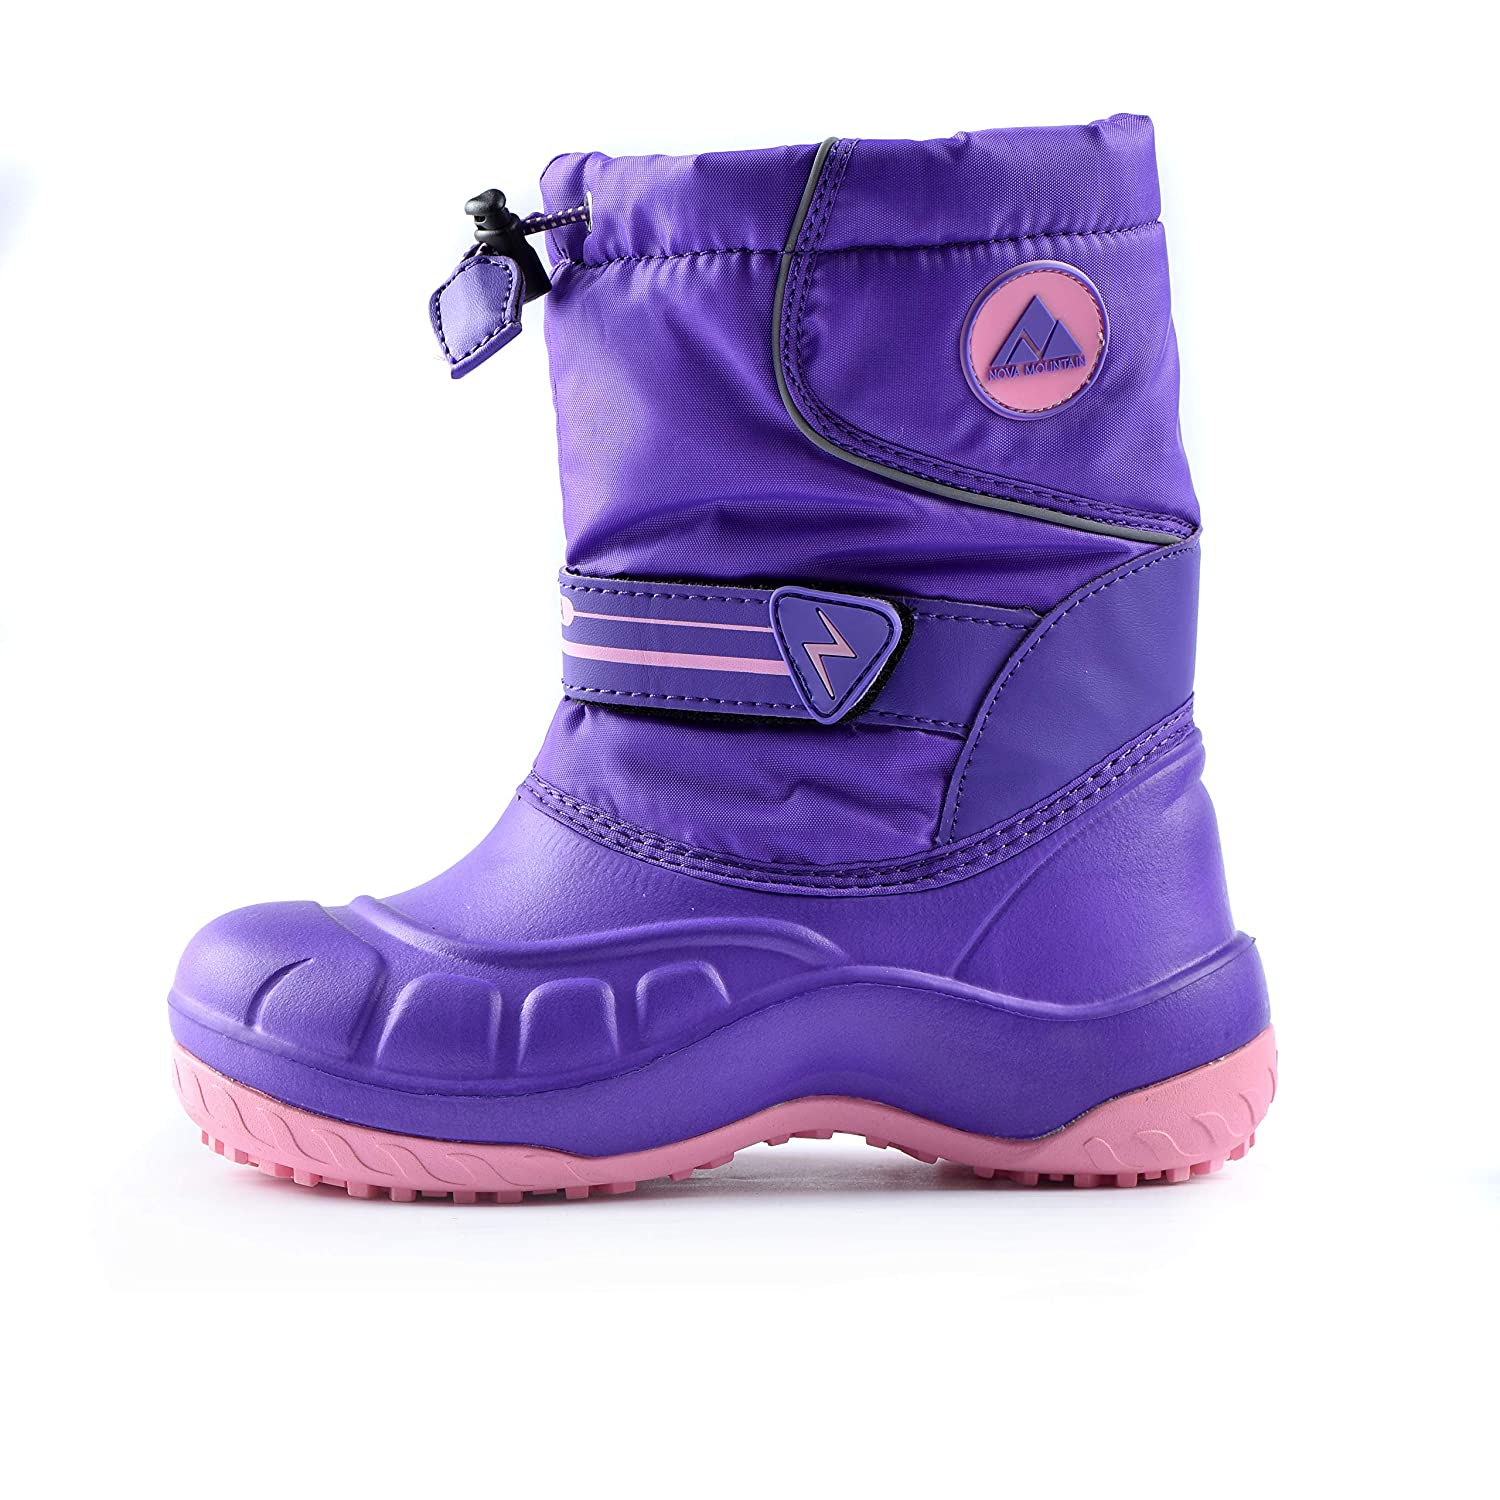 Nova Mountain Boys and Girls Waterproof Winter Snow Boots